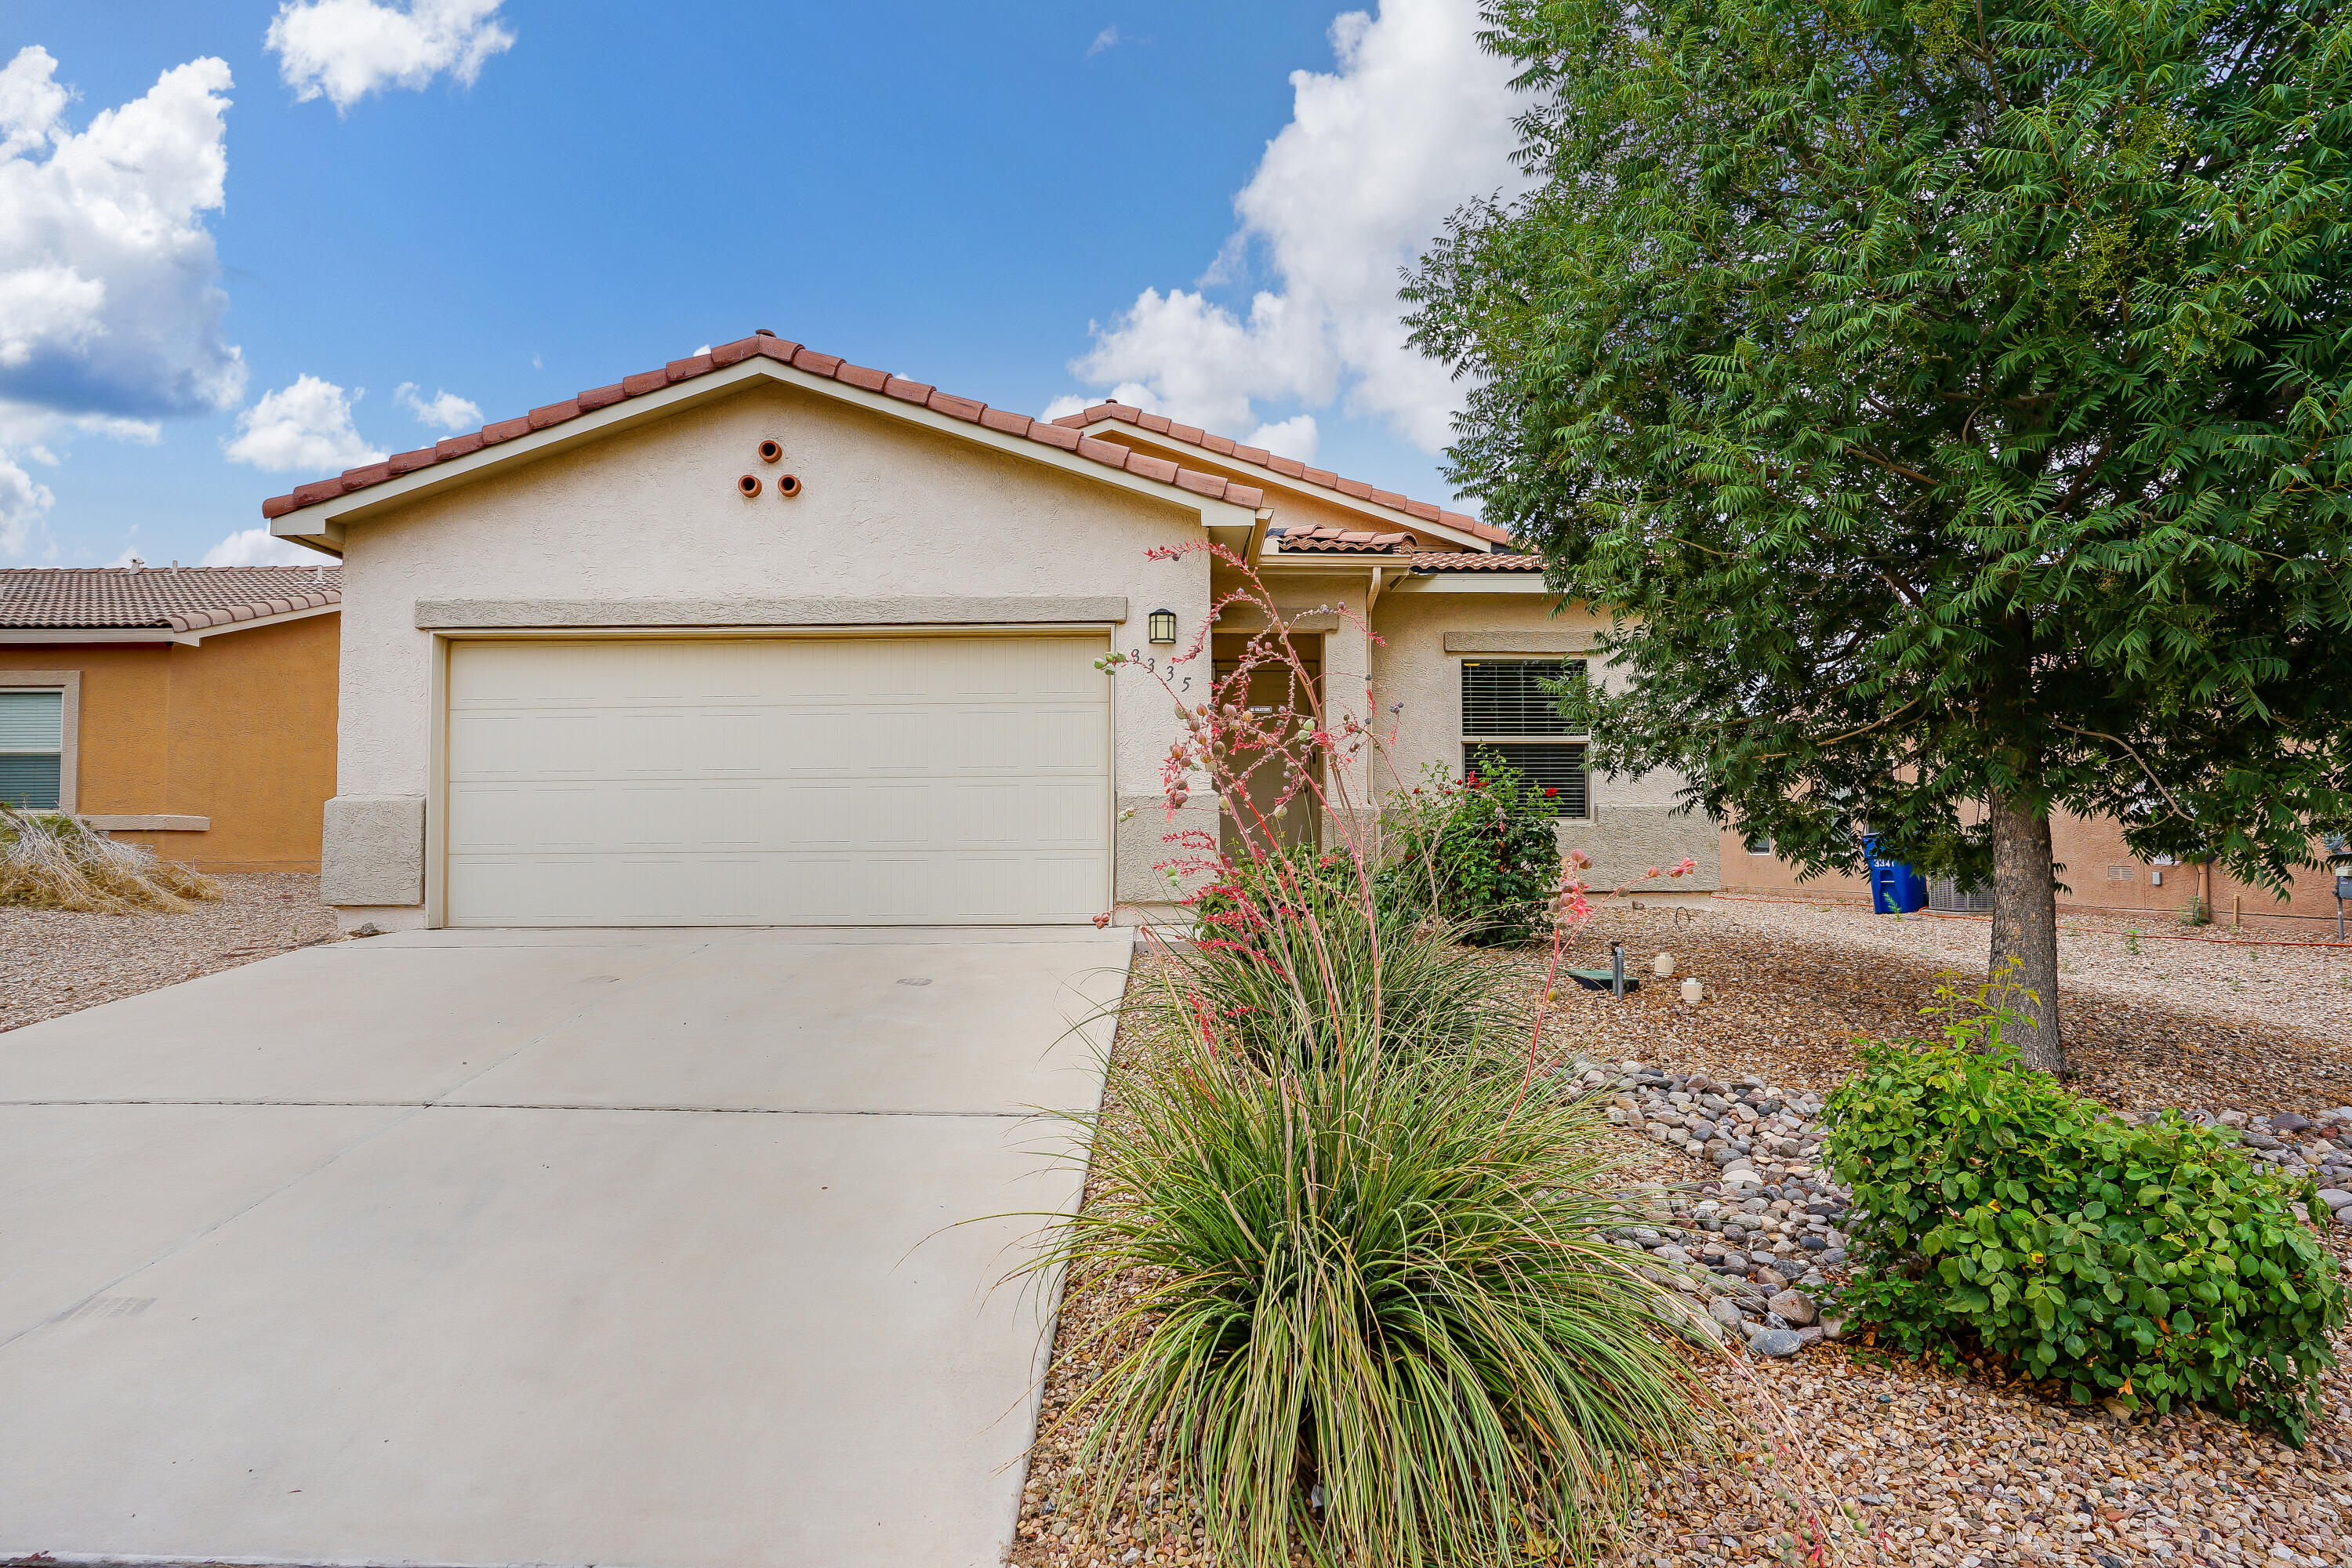 This well maintained home has ample room with 3 bedrooms & 2 full bathrooms, 2 living areas. The kitchen opens up to the family/dining room and is great for entertaining. This home offers no worry landscaping yet a gorgeous curb appeal. Easy access to I-25, shopping, entertainment, schools, Facebook and new shopping centers. Don't miss this opportunity, make an appointment to see it today!